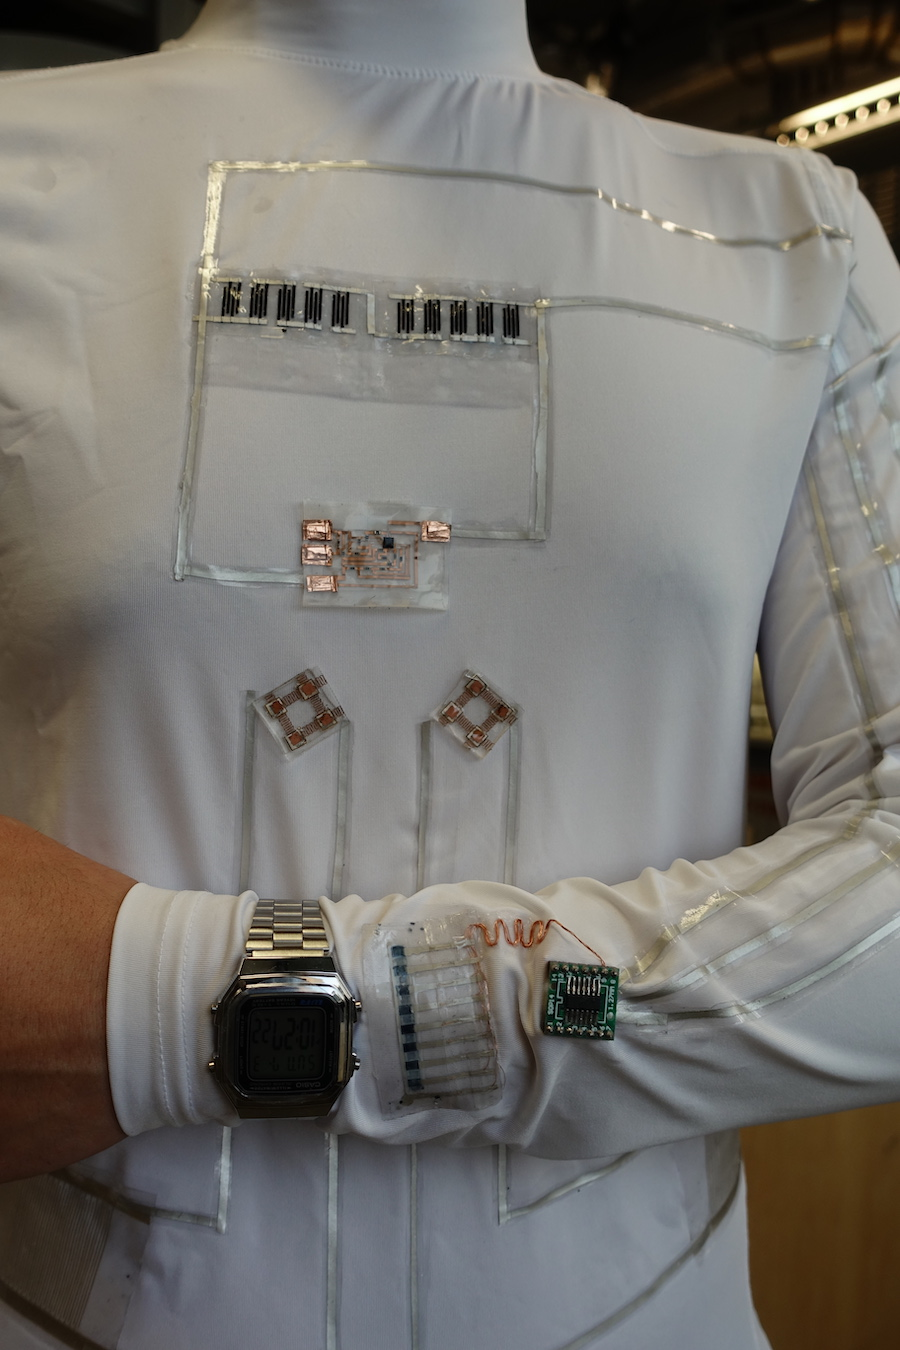 White long sleeve shirt with electronics printed onto it